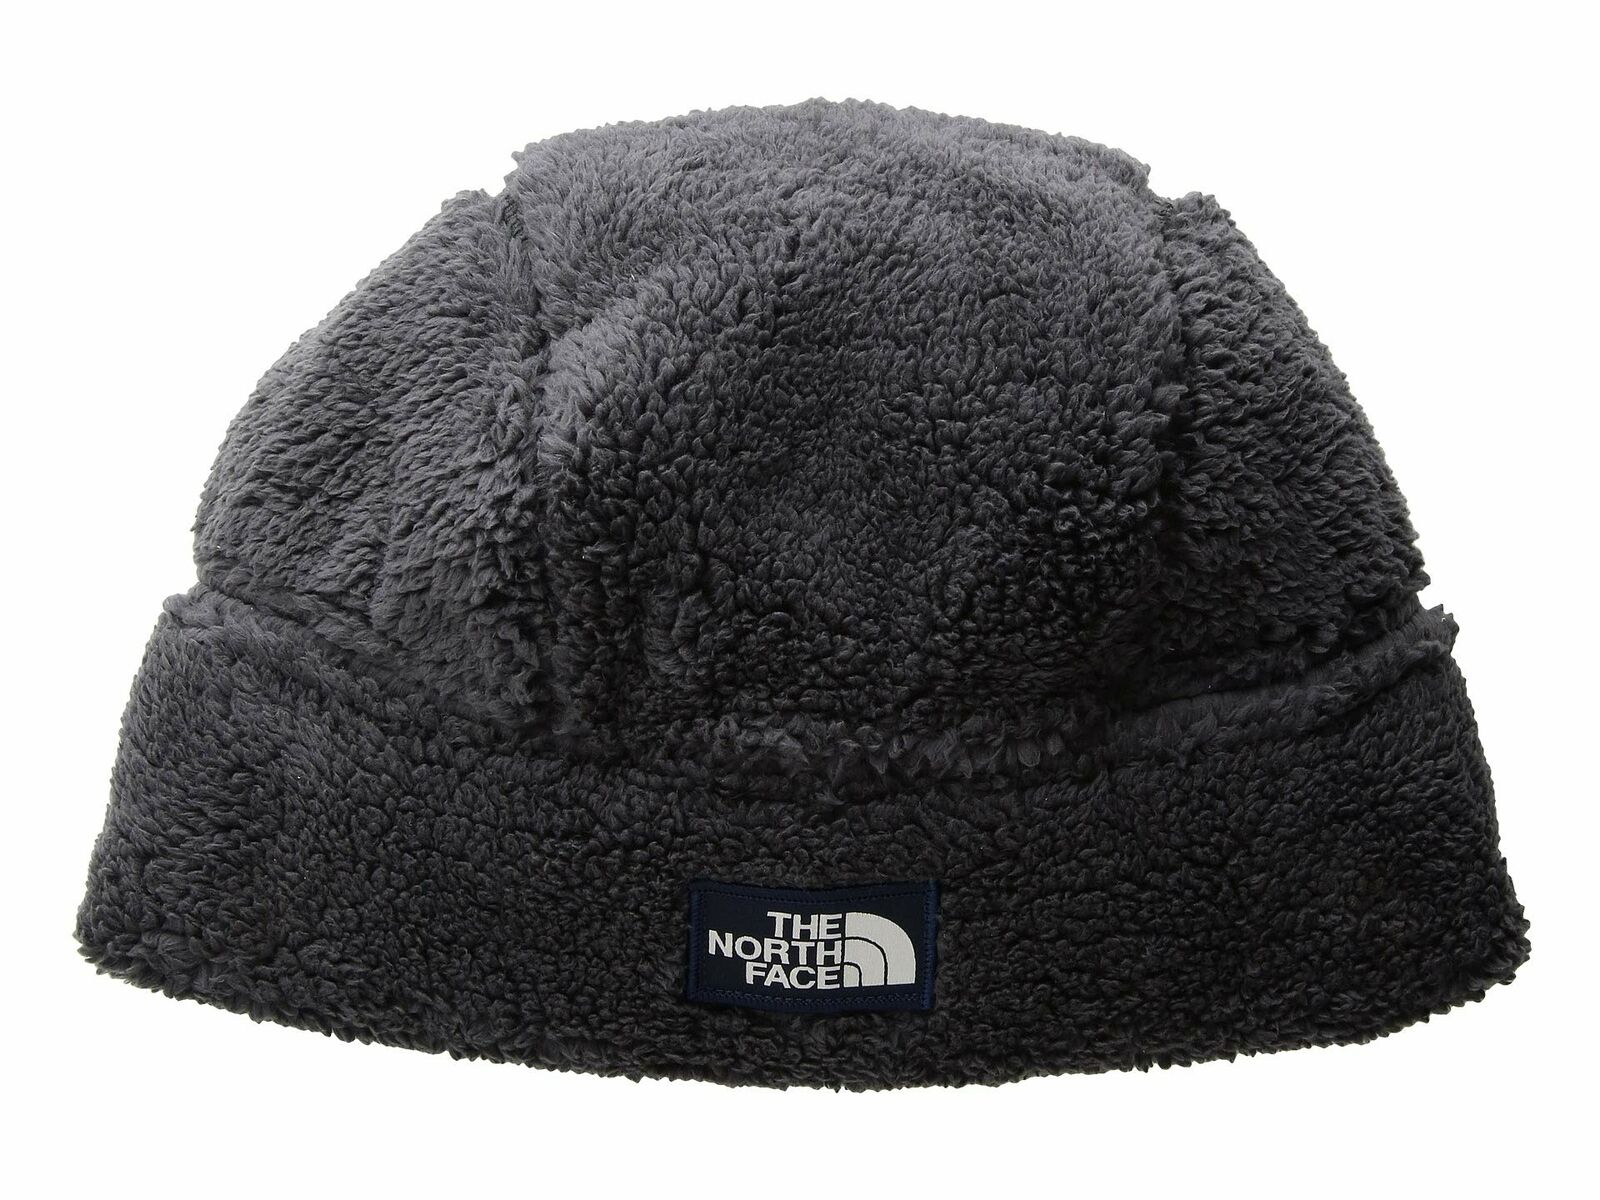 5c6f169e6 The North Face Campshire Beanie Weathered Black One Size